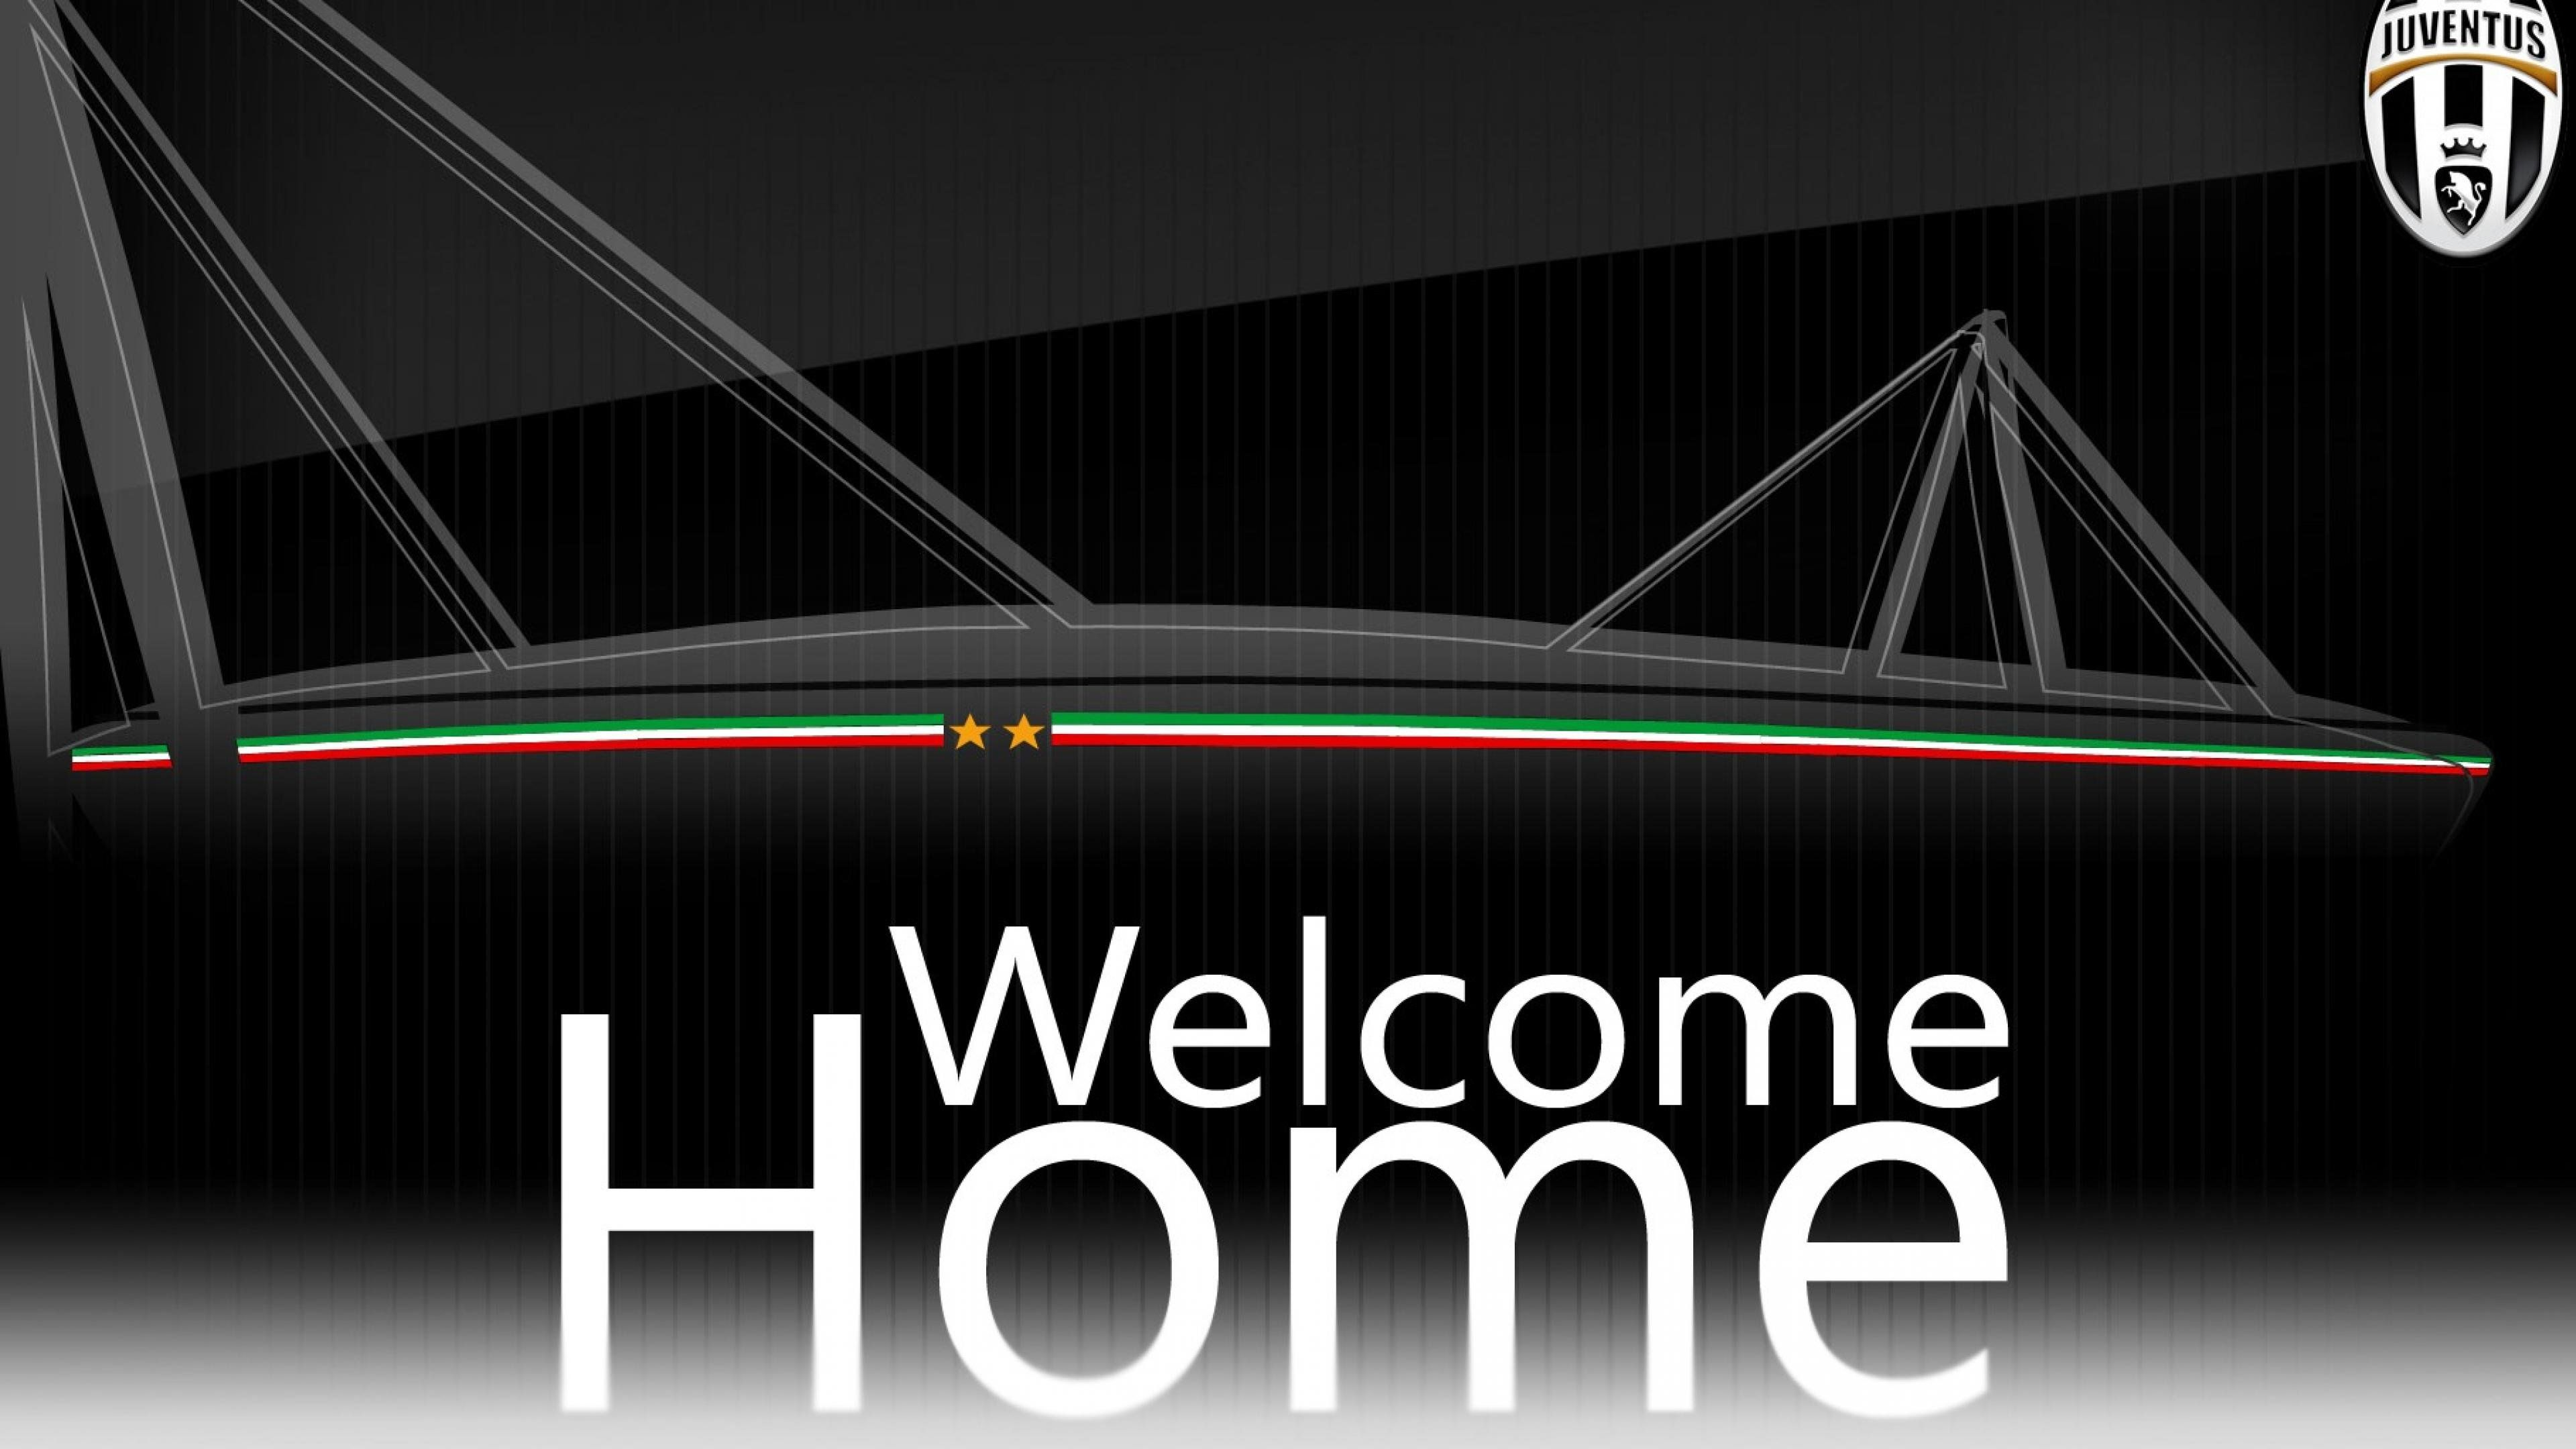 juventus stadium hd desktop wallpaper mobile